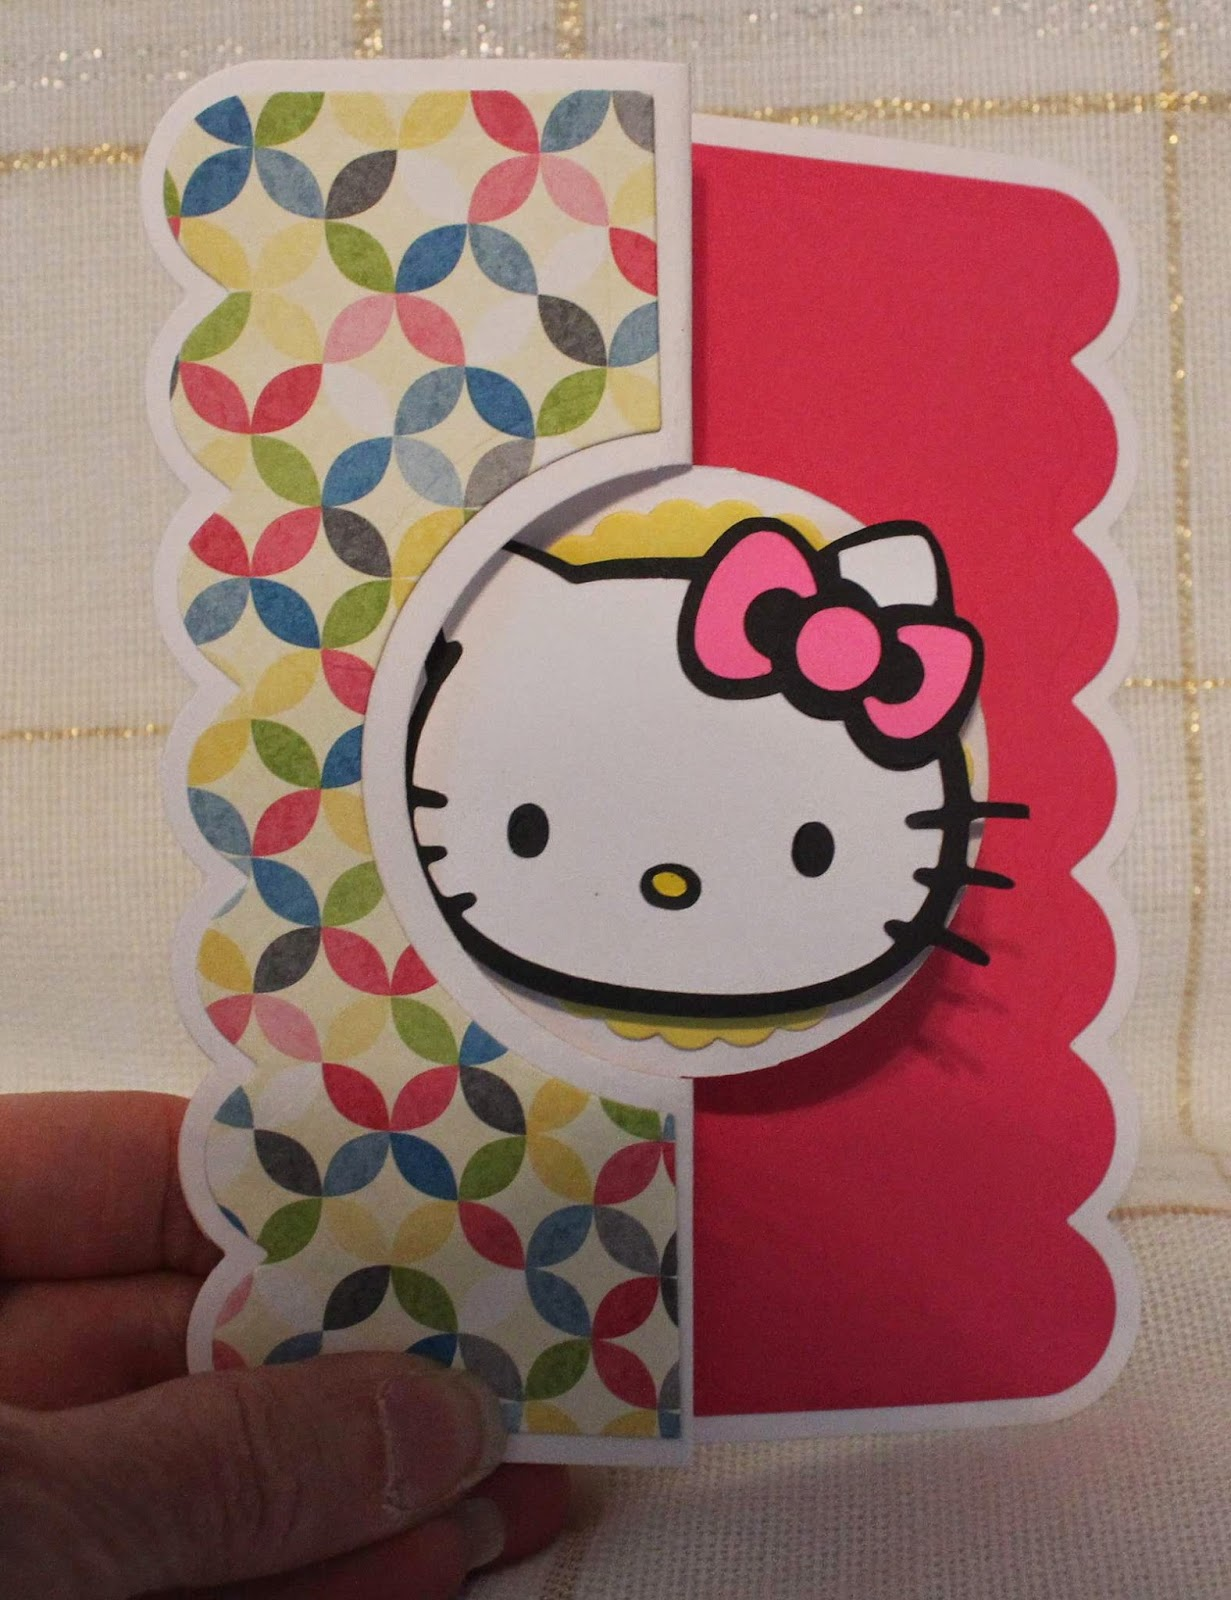 90cc98b83 Created this 3D card using Cricut cartidge Hello Kitty, Sizzix Stephanie  Barnard card die & Stampin' Up items (colors, cardstock & stamp).